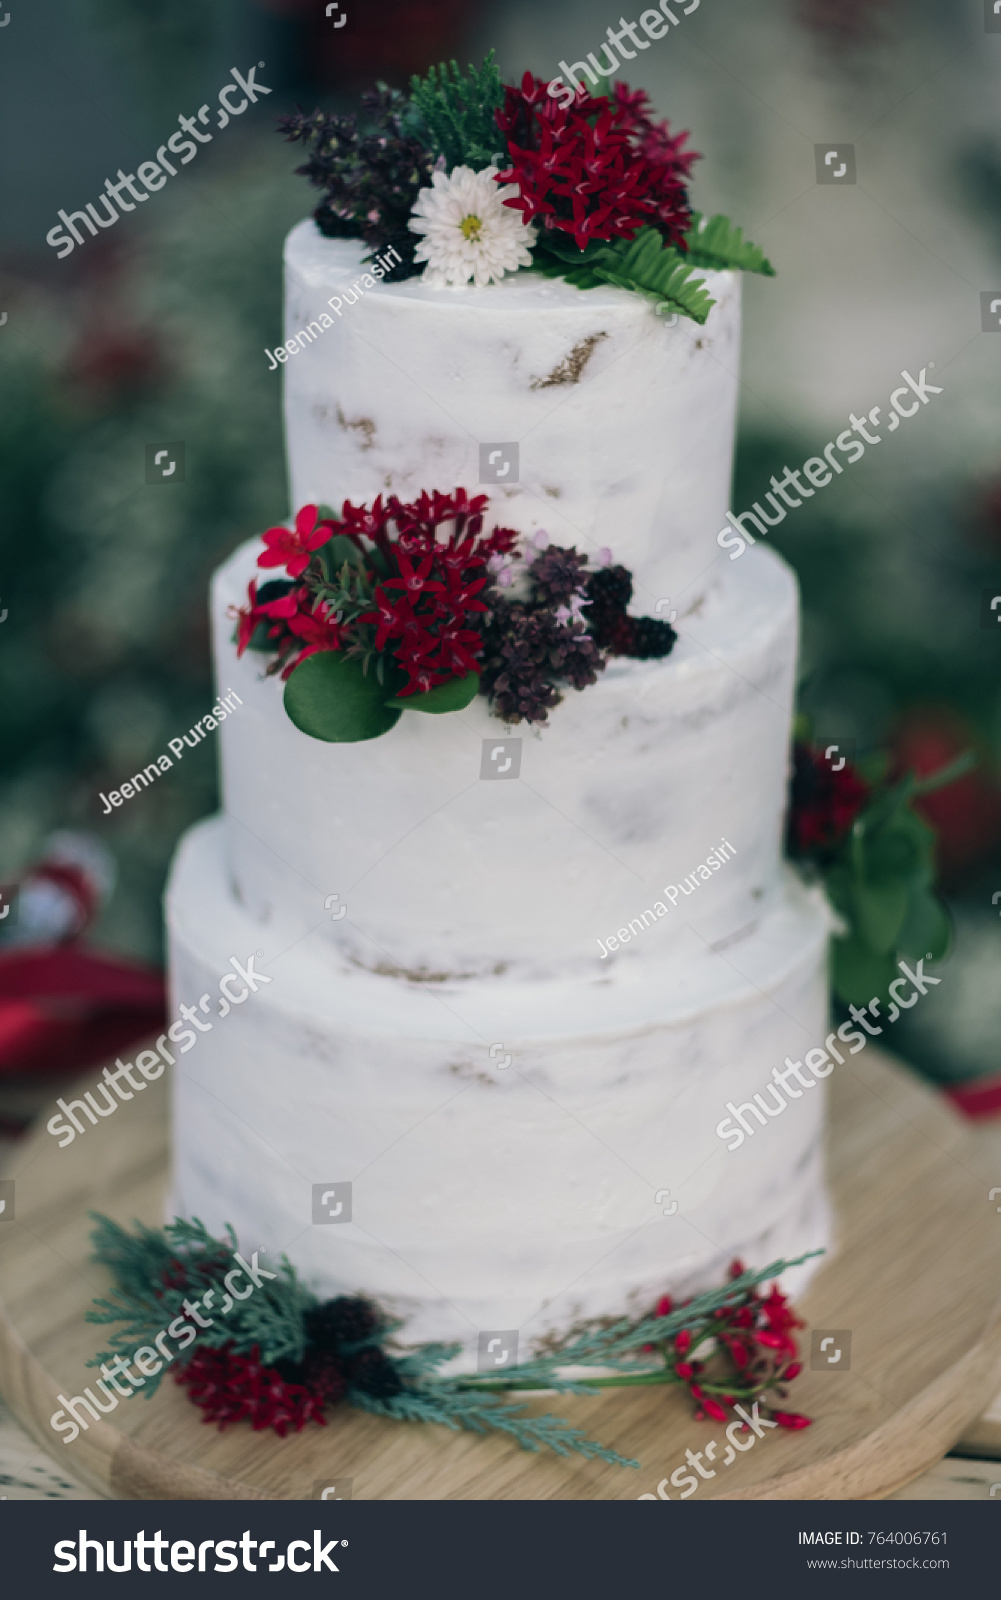 Wedding Cake Red Flower Stock Photo (Royalty Free) 764006761 ...